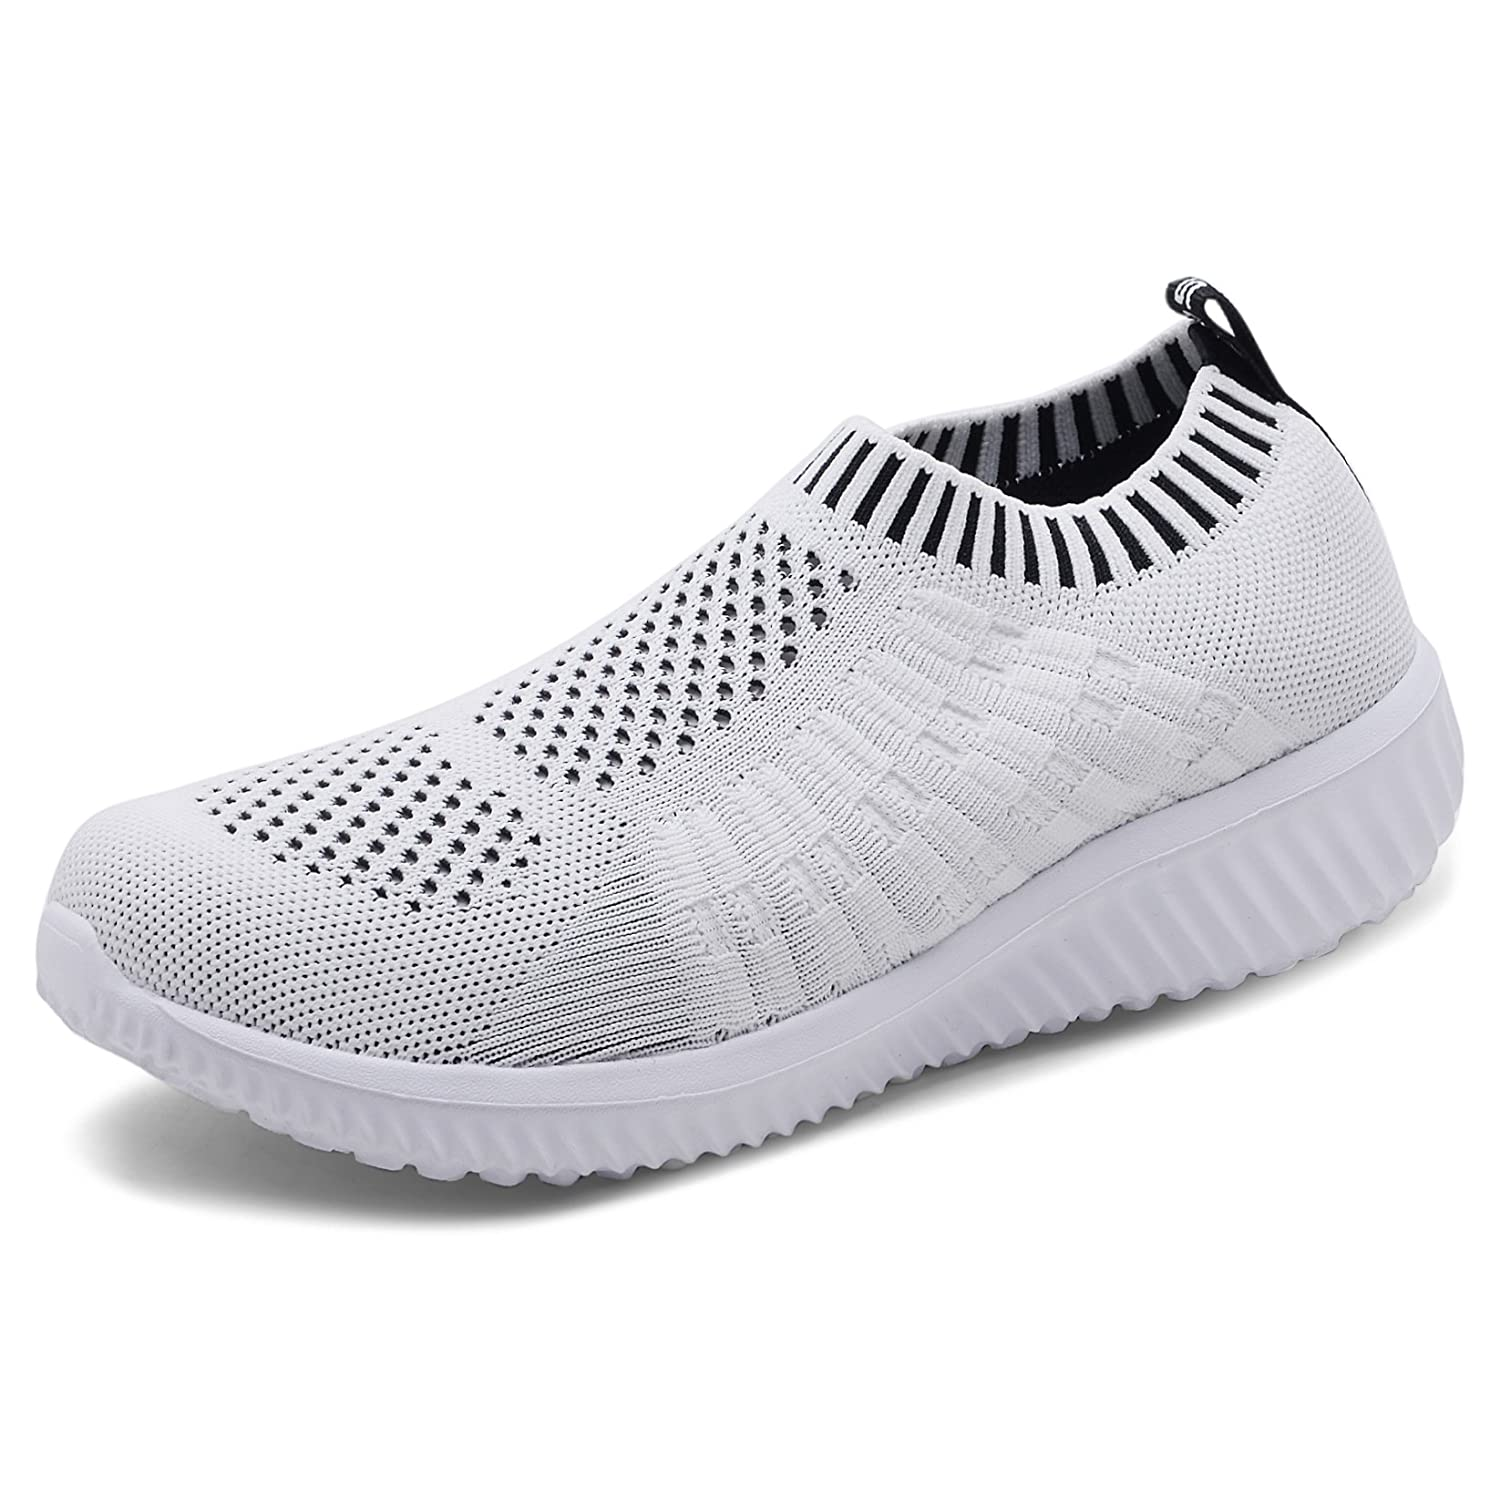 TIOSEBON Women's Athletic Shoes Casual Mesh Walking Sneakers - Breathable Running Shoes B07DNCLSKV 10 M US|6701 White